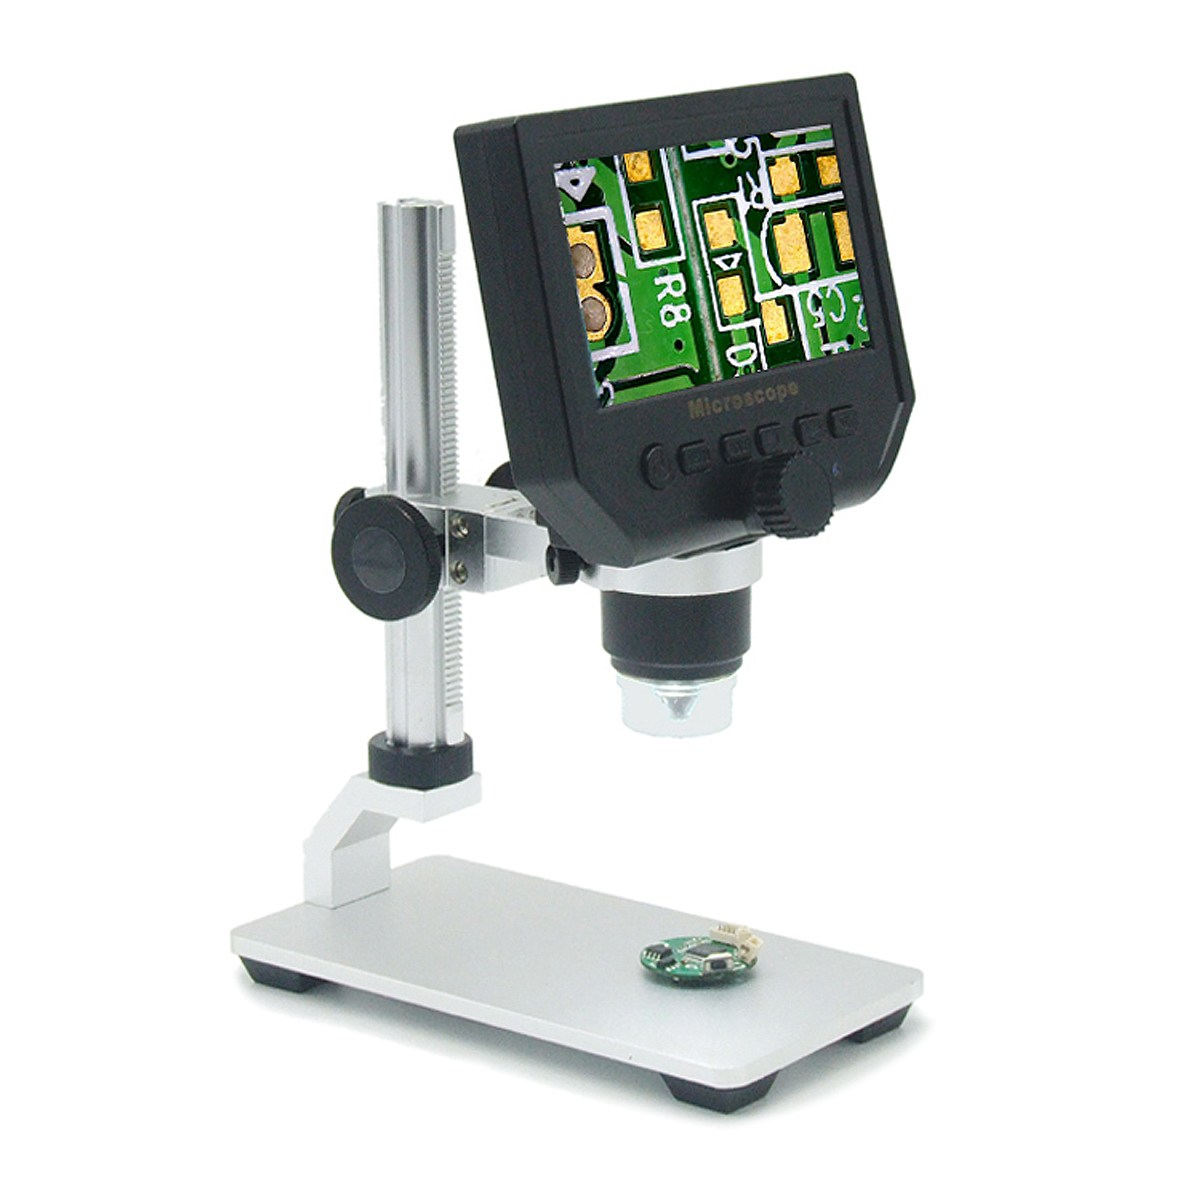 1-600x USB Digital Electronic Microscope 4.3 inch HD LCD display Electronic Microscope For Pcb Motherboard Repair 1 600x usb digital electronic microscope 8 led vga microscope with 4 3 hd lcd screen stand for cellphone pcb repair